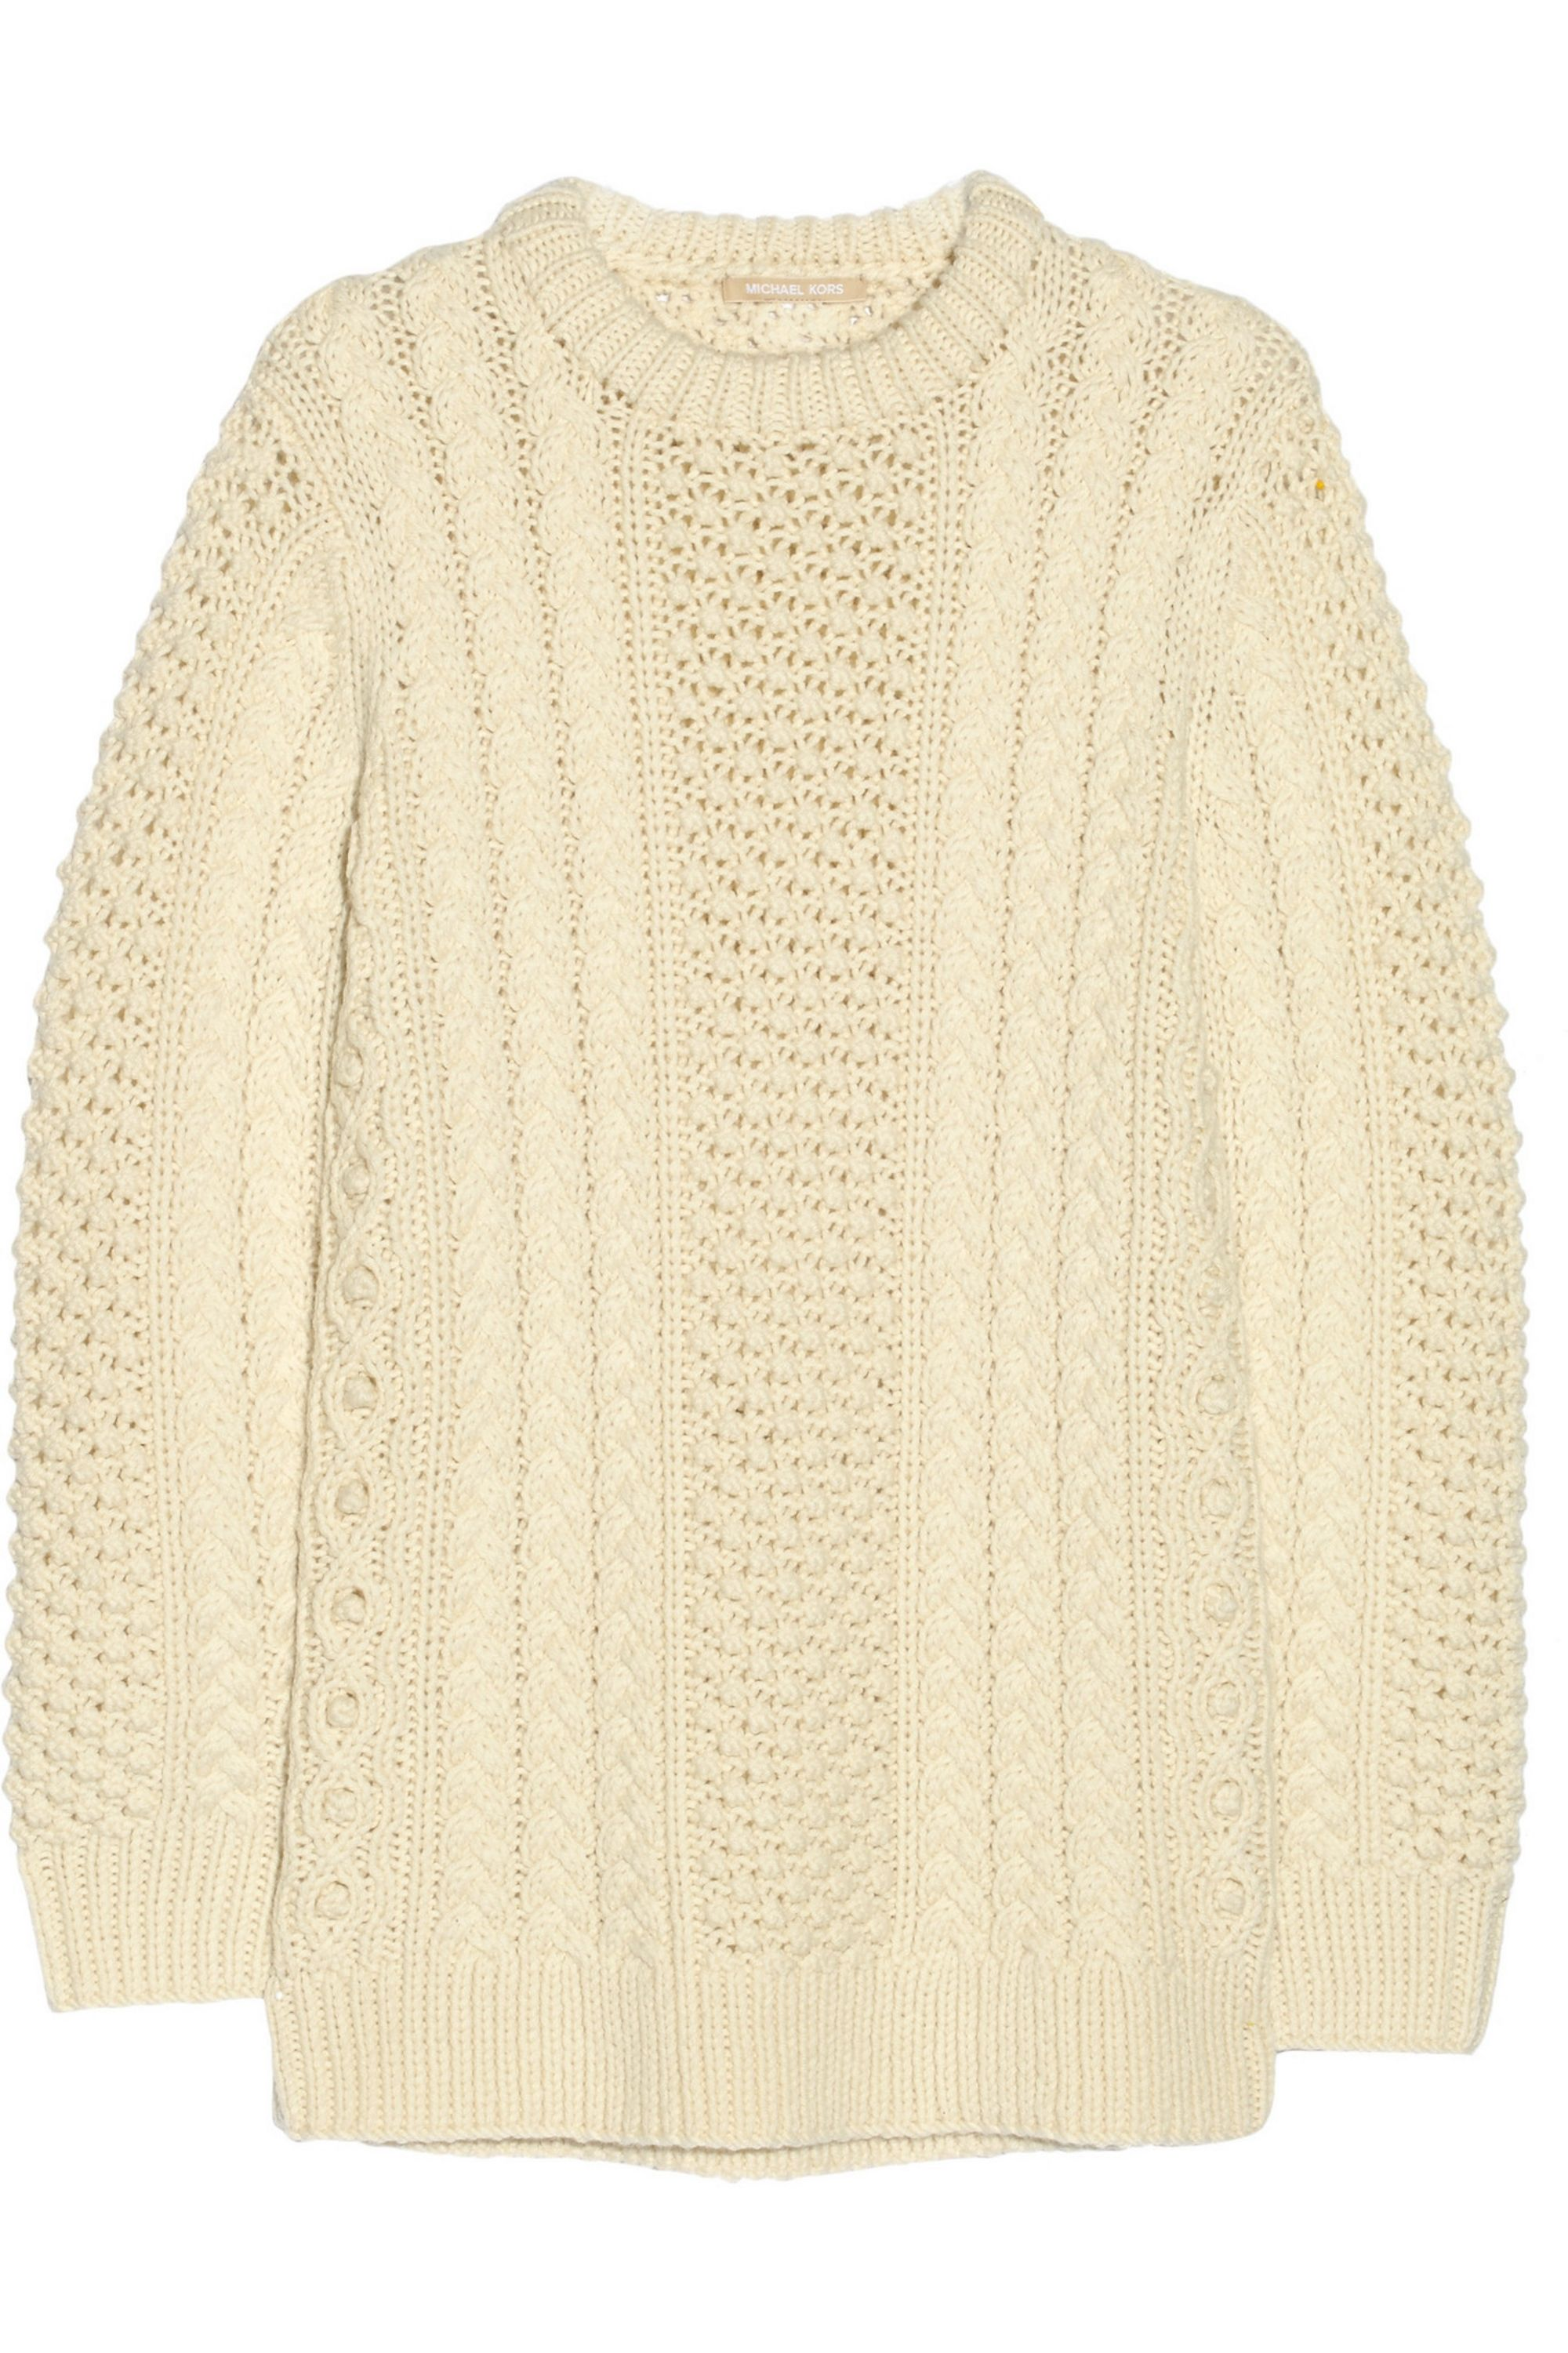 Cream Cable Knit Merino Wool Sweater Michael Kors Collection Net A Porter